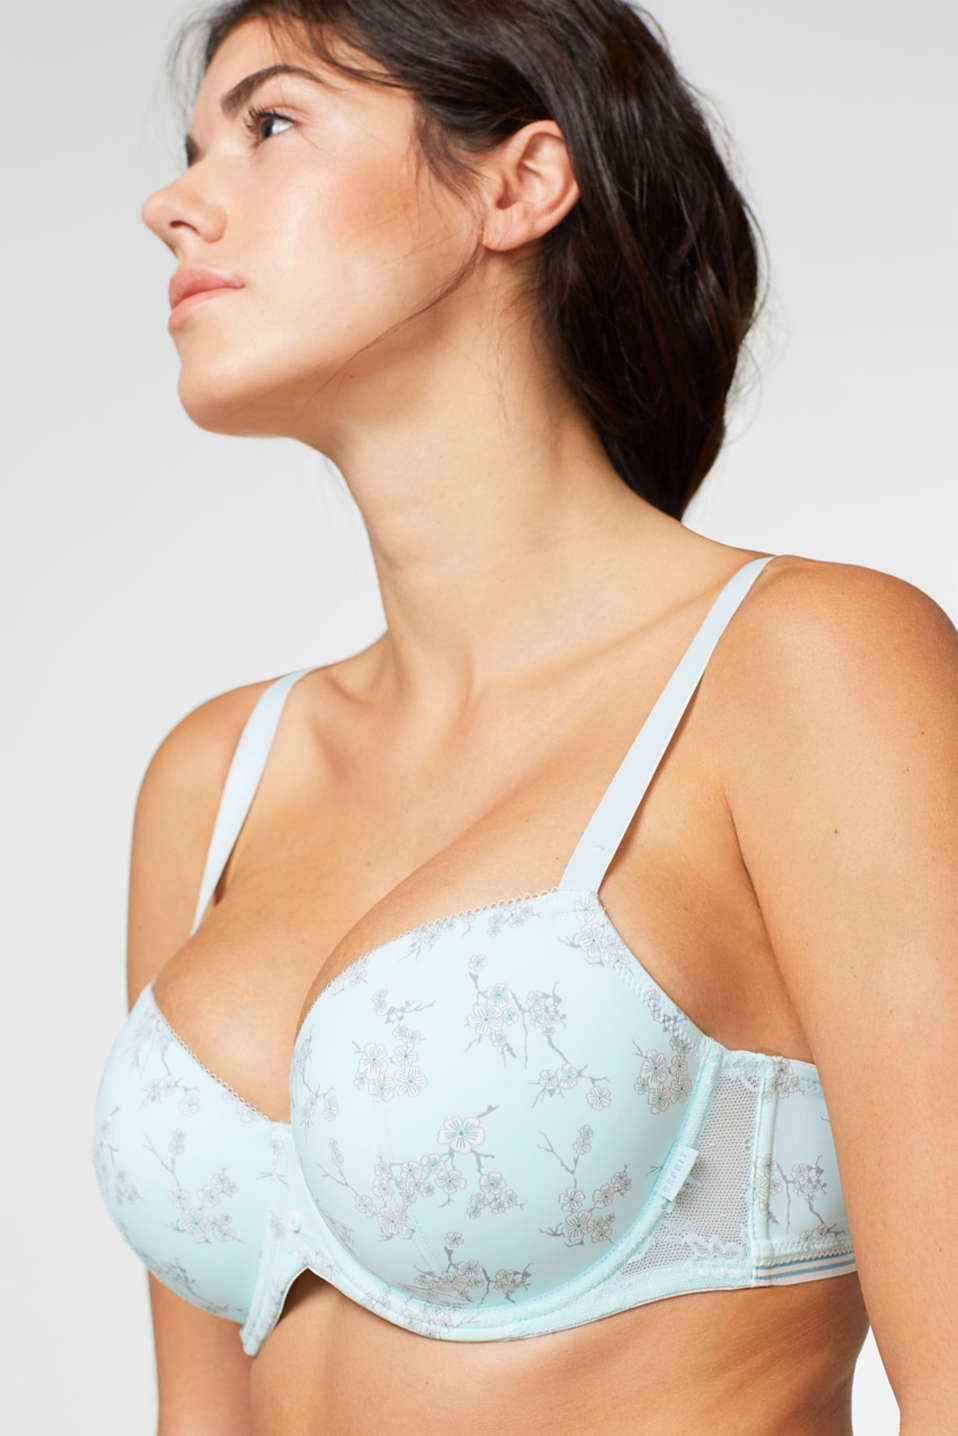 Esprit - Padded underwire bra, larger cups + print